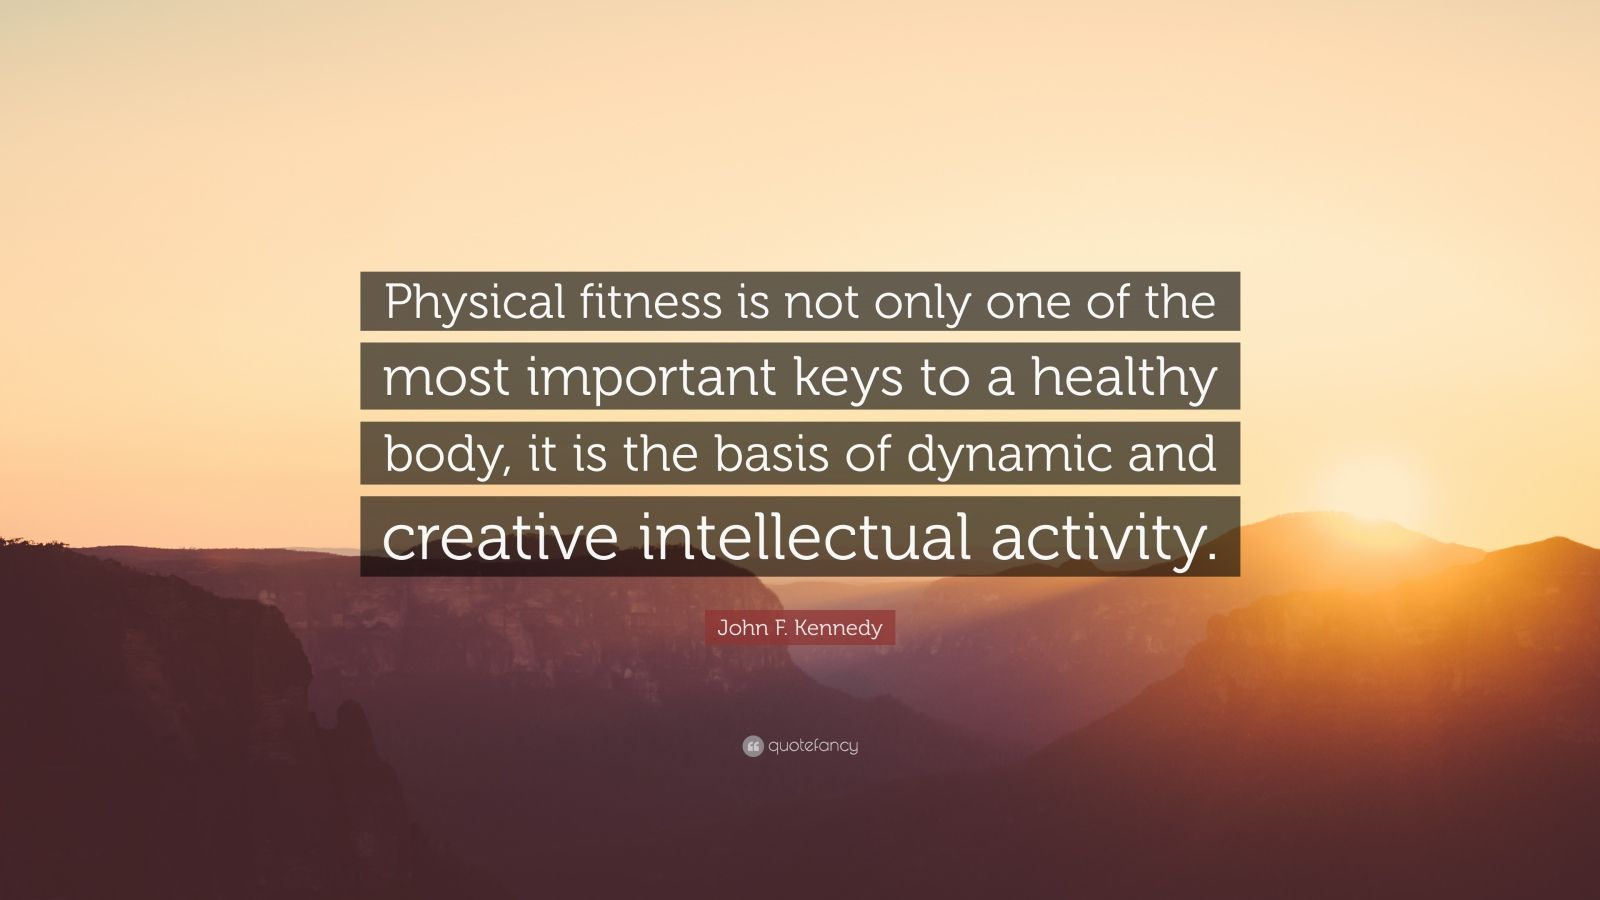 """John F. Kennedy Quote: """"Physical fitness is not only one of the most important keys to a healthy body, it is the basis of dynamic and creative intellectual activity."""""""